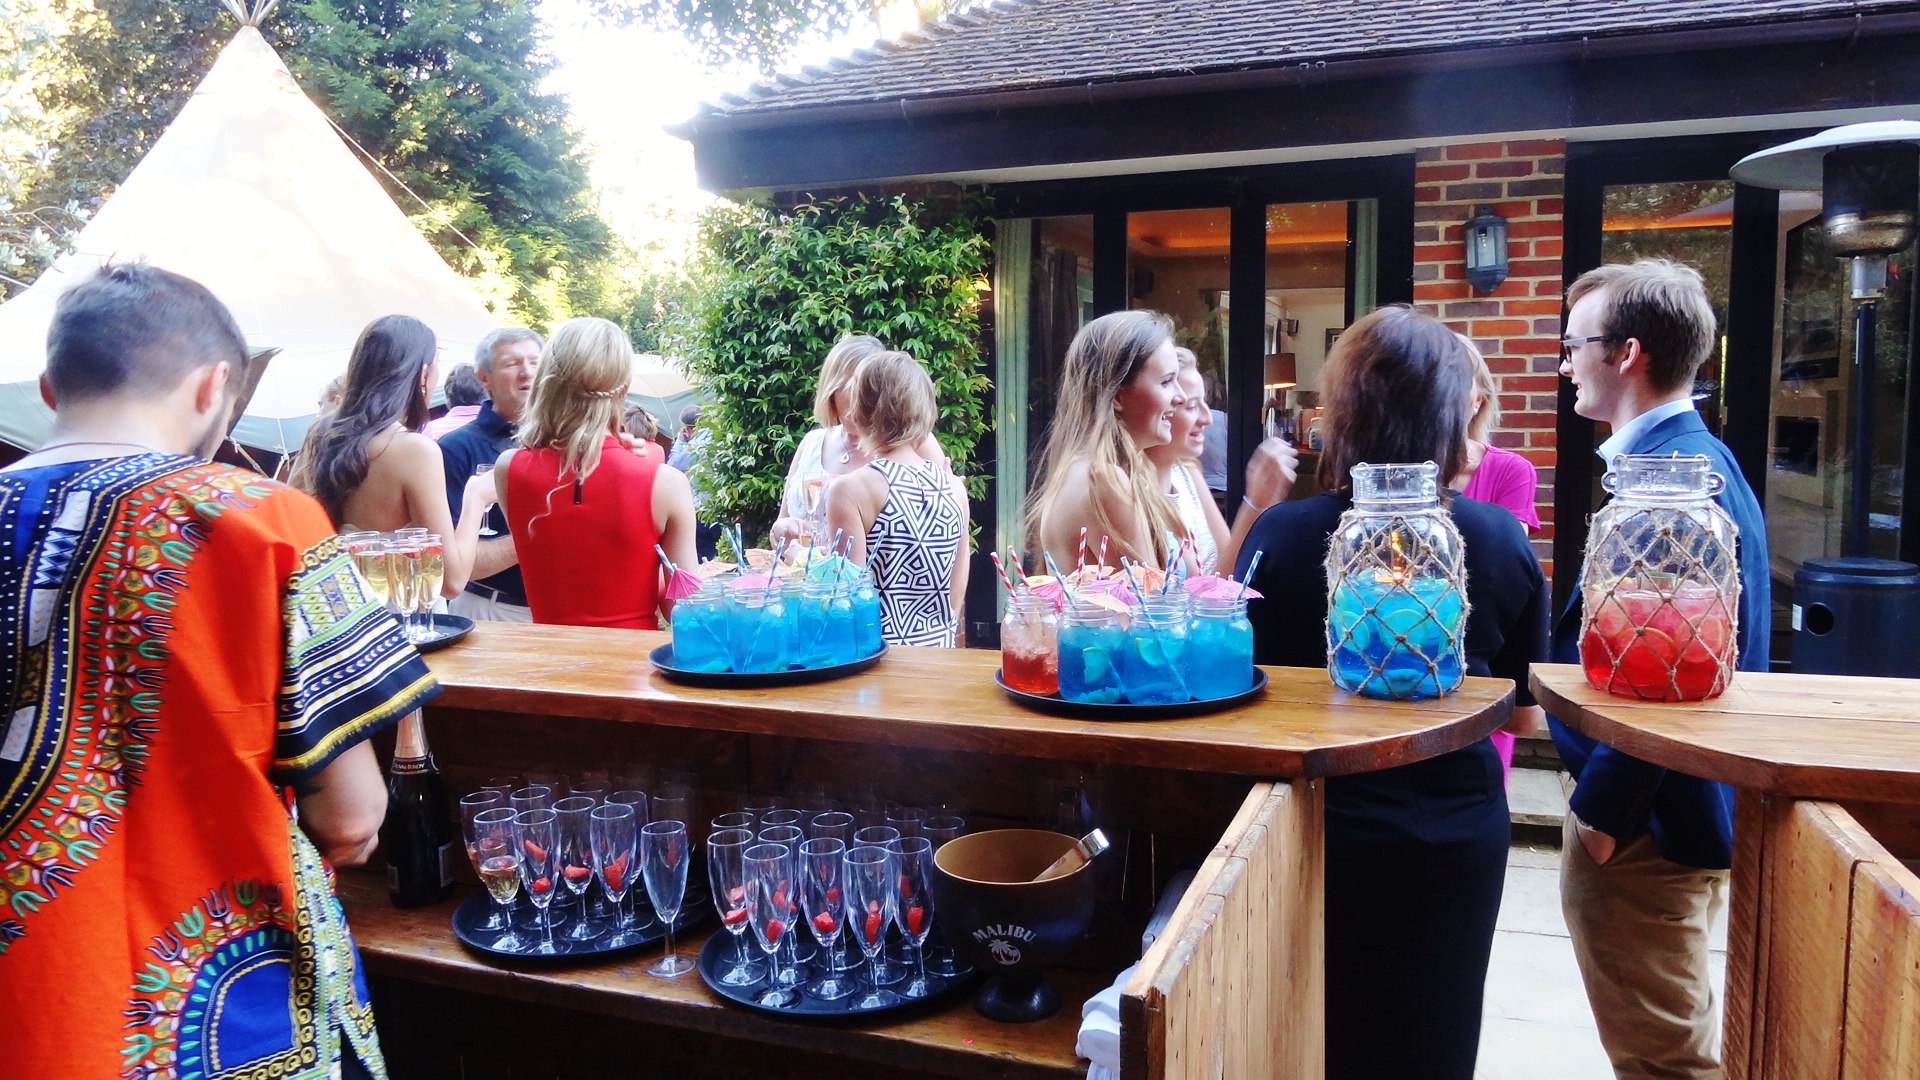 You know we do Mobile Bars as well...right!? - Image 2